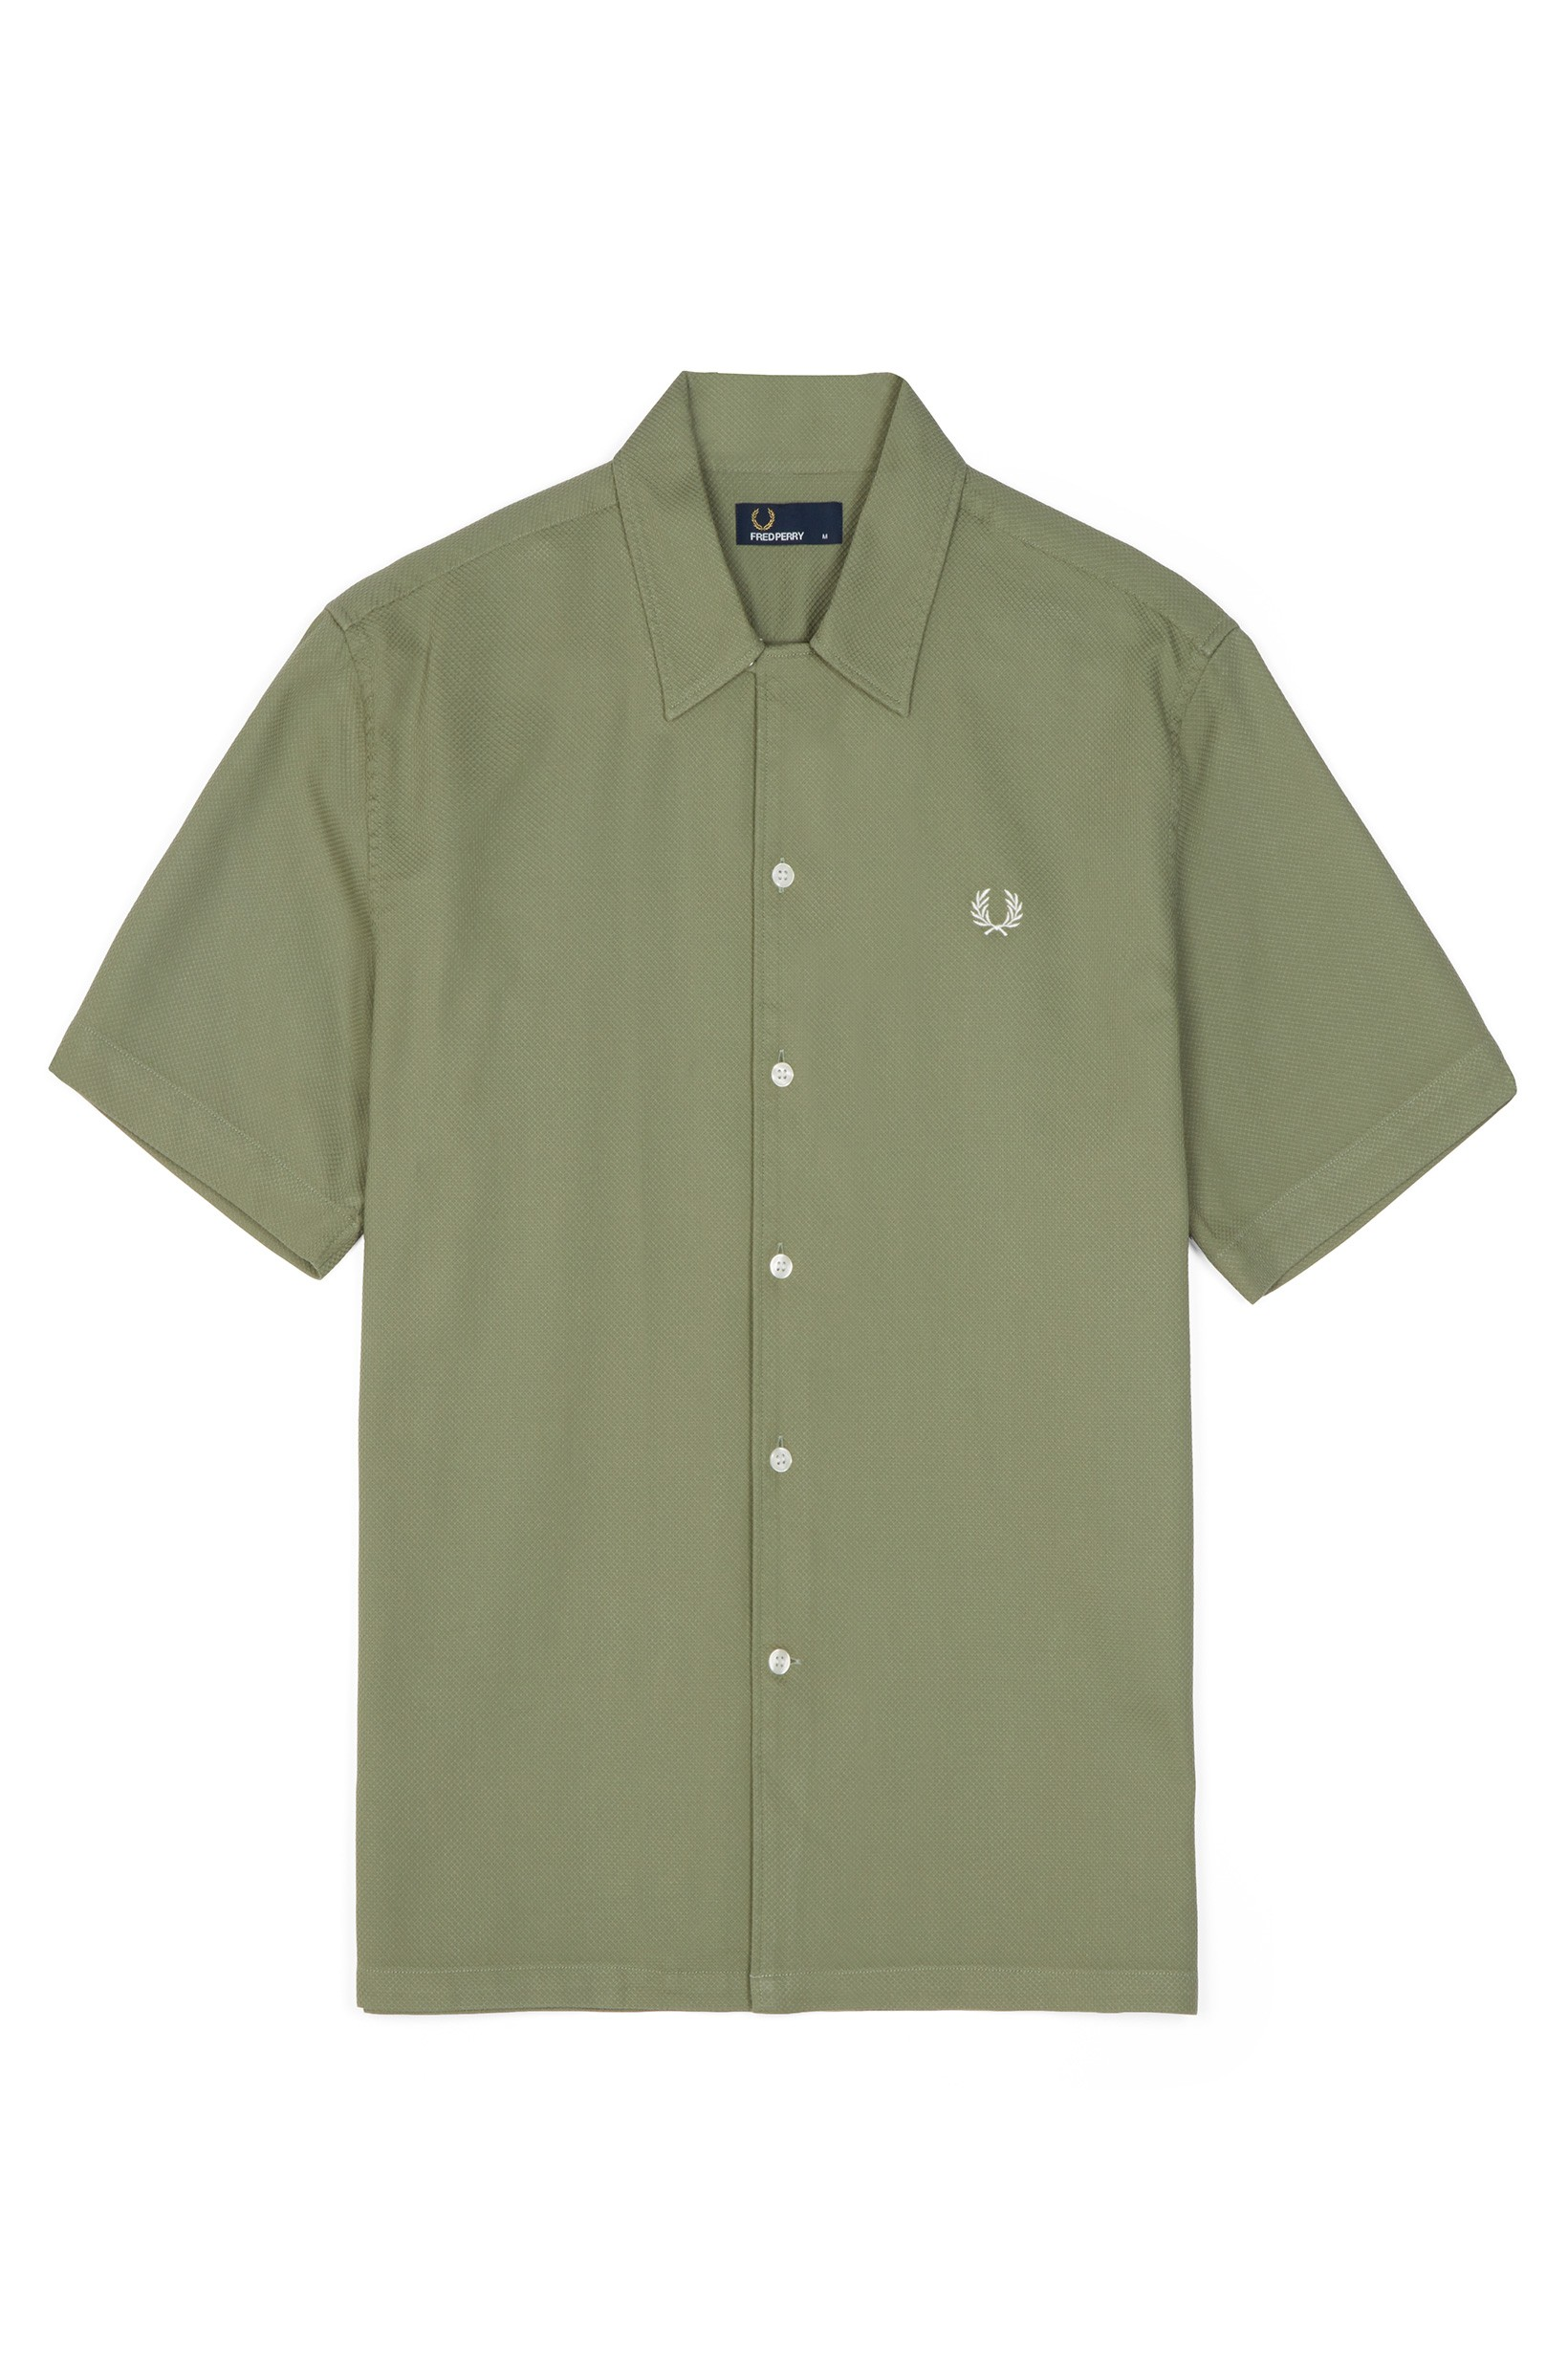 Fred Perry Washing Khaki Woven Piqué Shirt